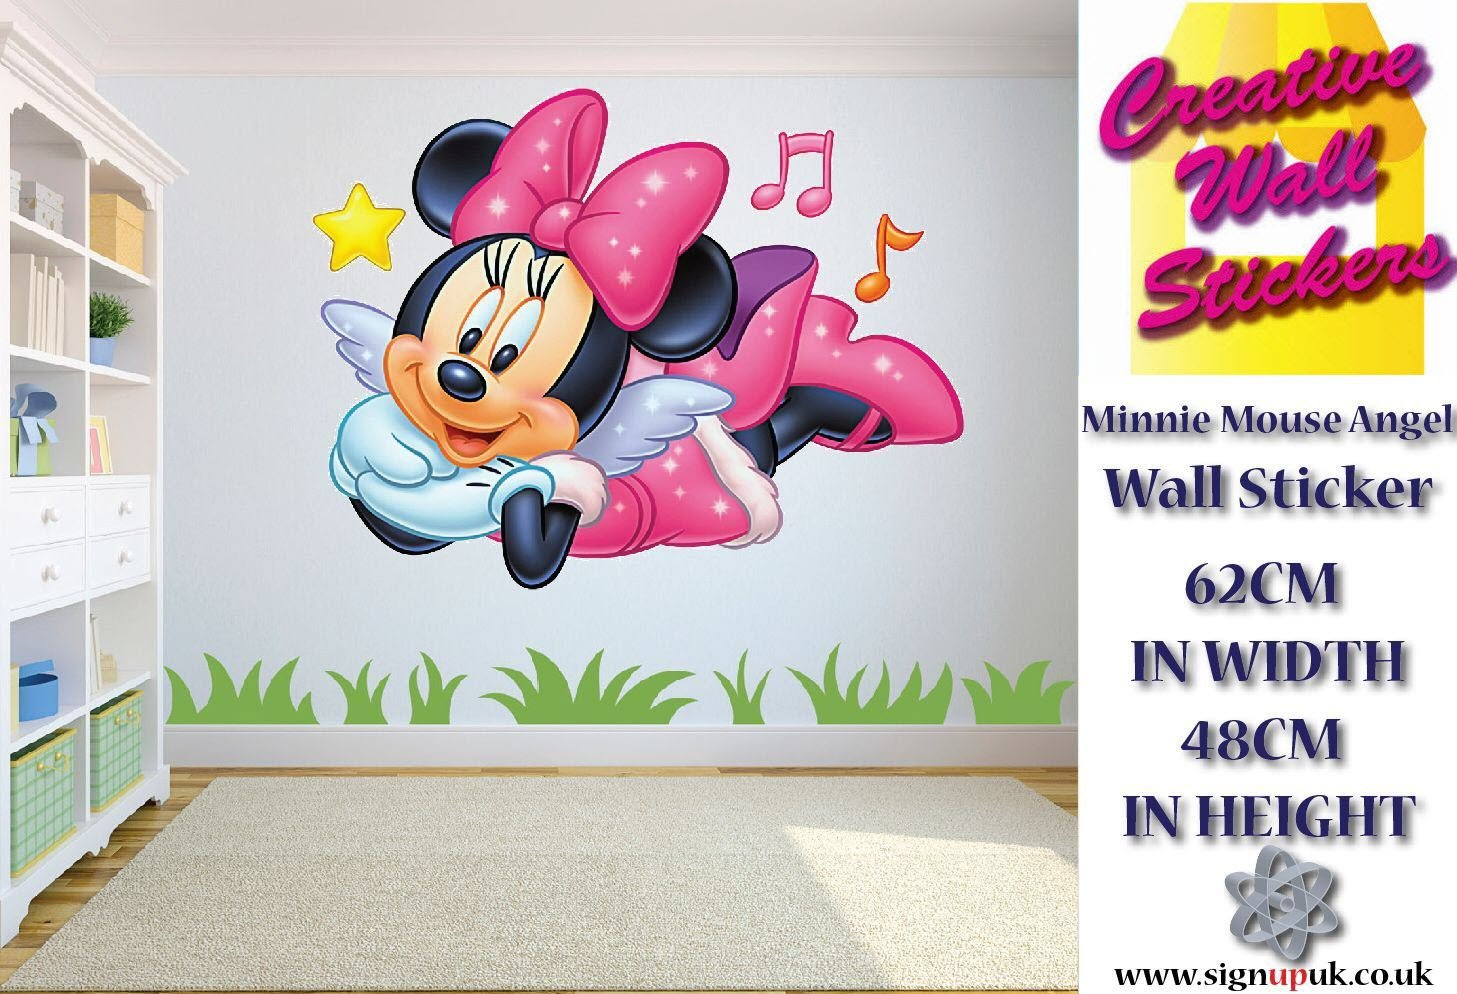 Disney Minnie Mouse Angel Wall Sticker Childrens Room Decor Large. Creative Wall Stickers